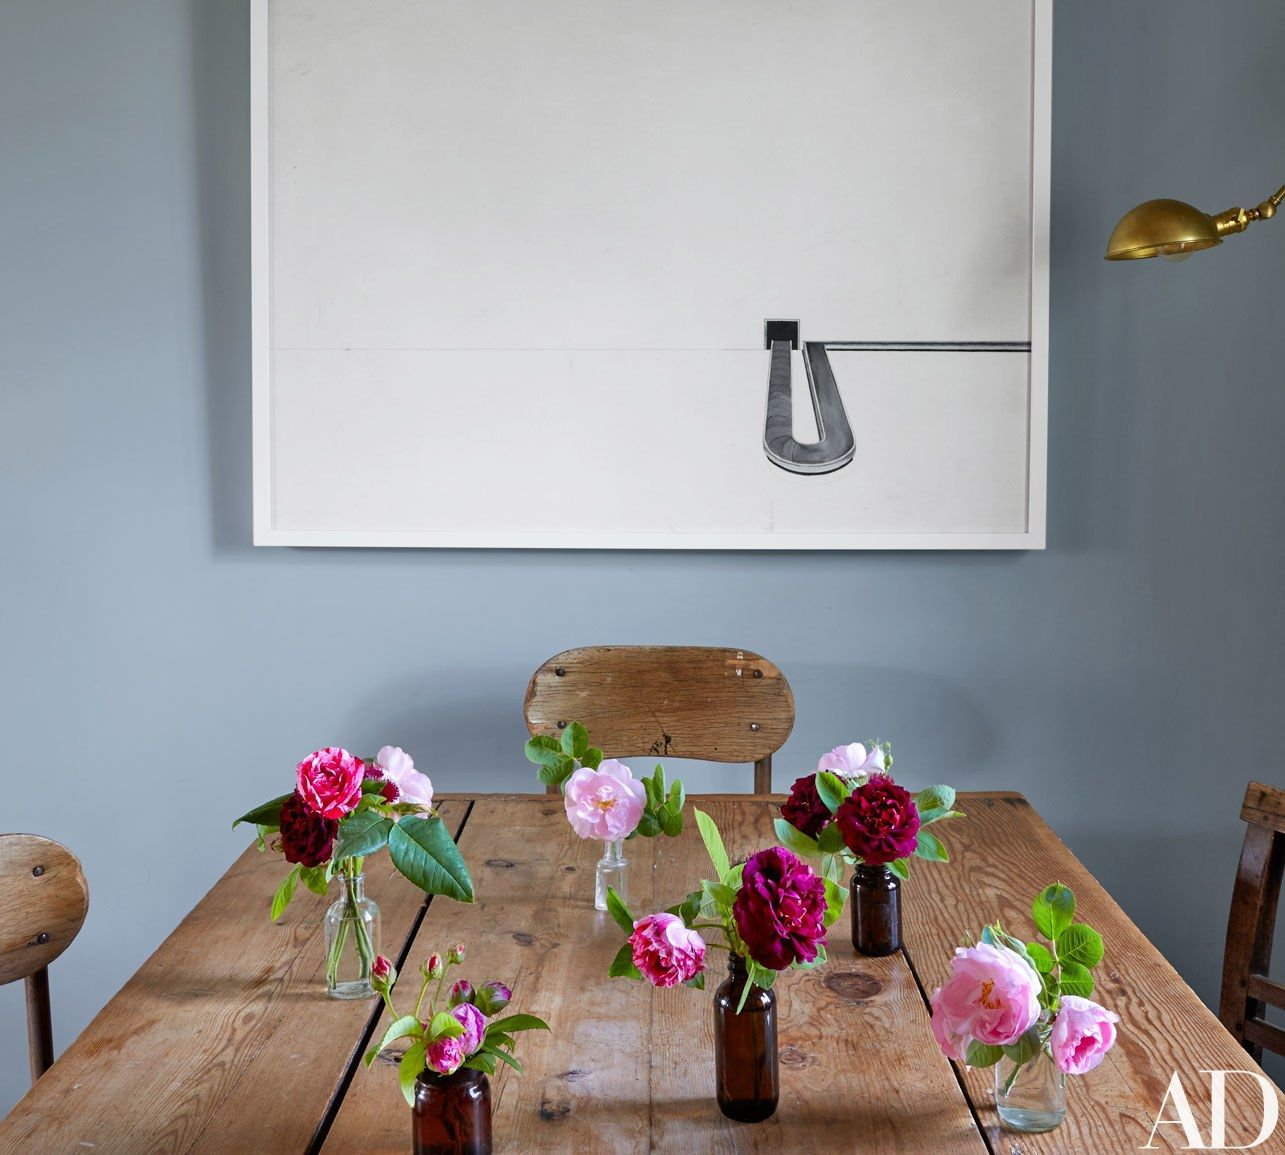 People painting houses - 11 Classic Decor Elements Every English Country Home Should Have Farmhouse Tables Brooks Updated The Classic In Her Kitchen With A Contemporary Painting